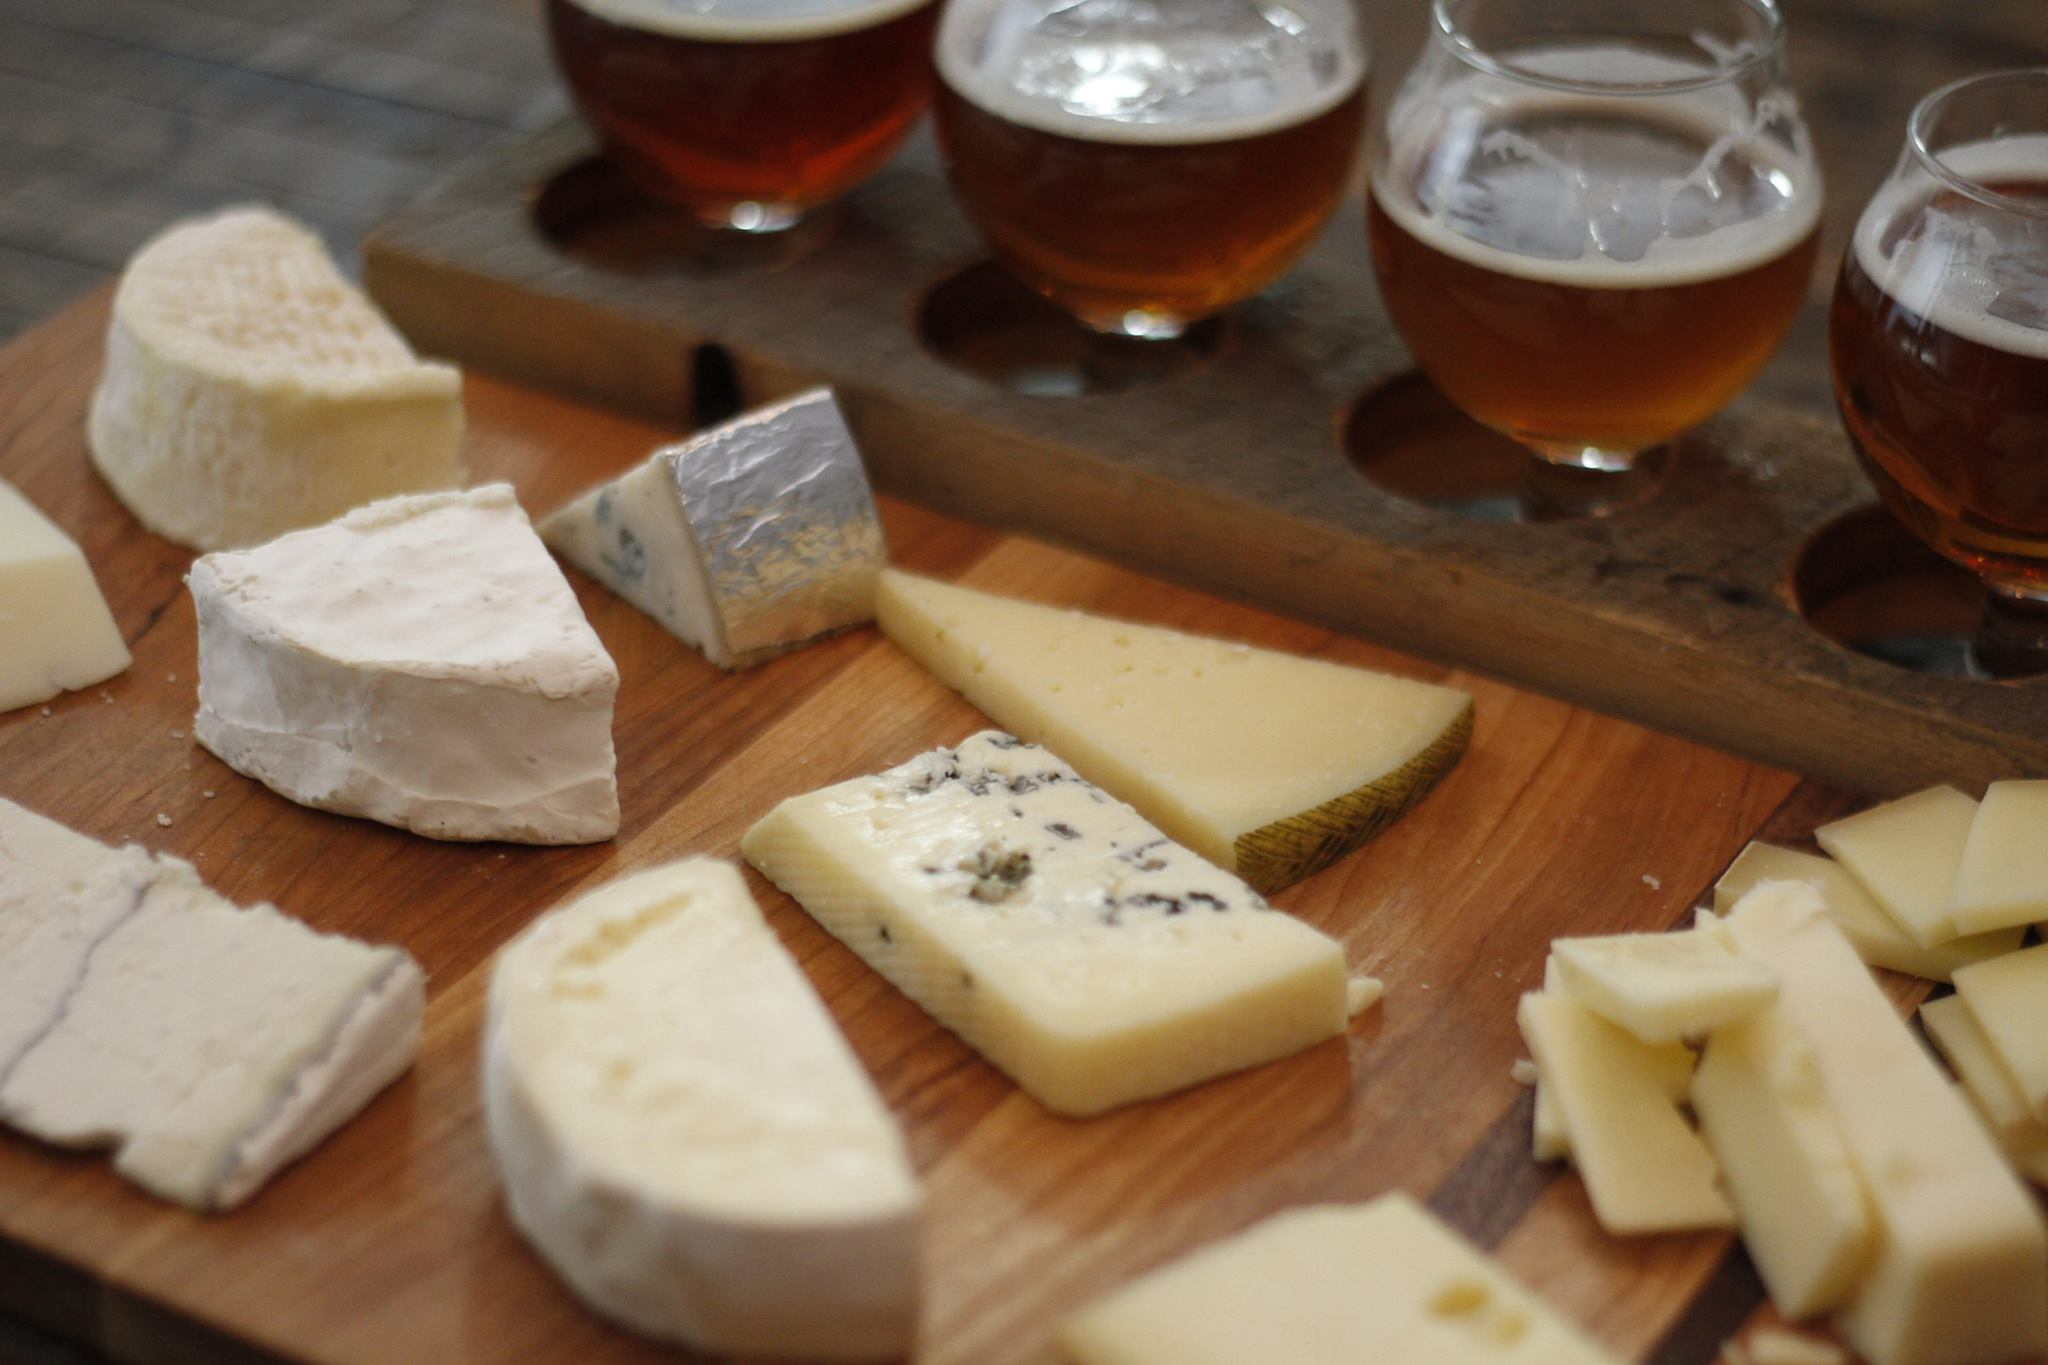 cheese peddler and bsb - beer and cheese pairing - dbb - 08-13-14